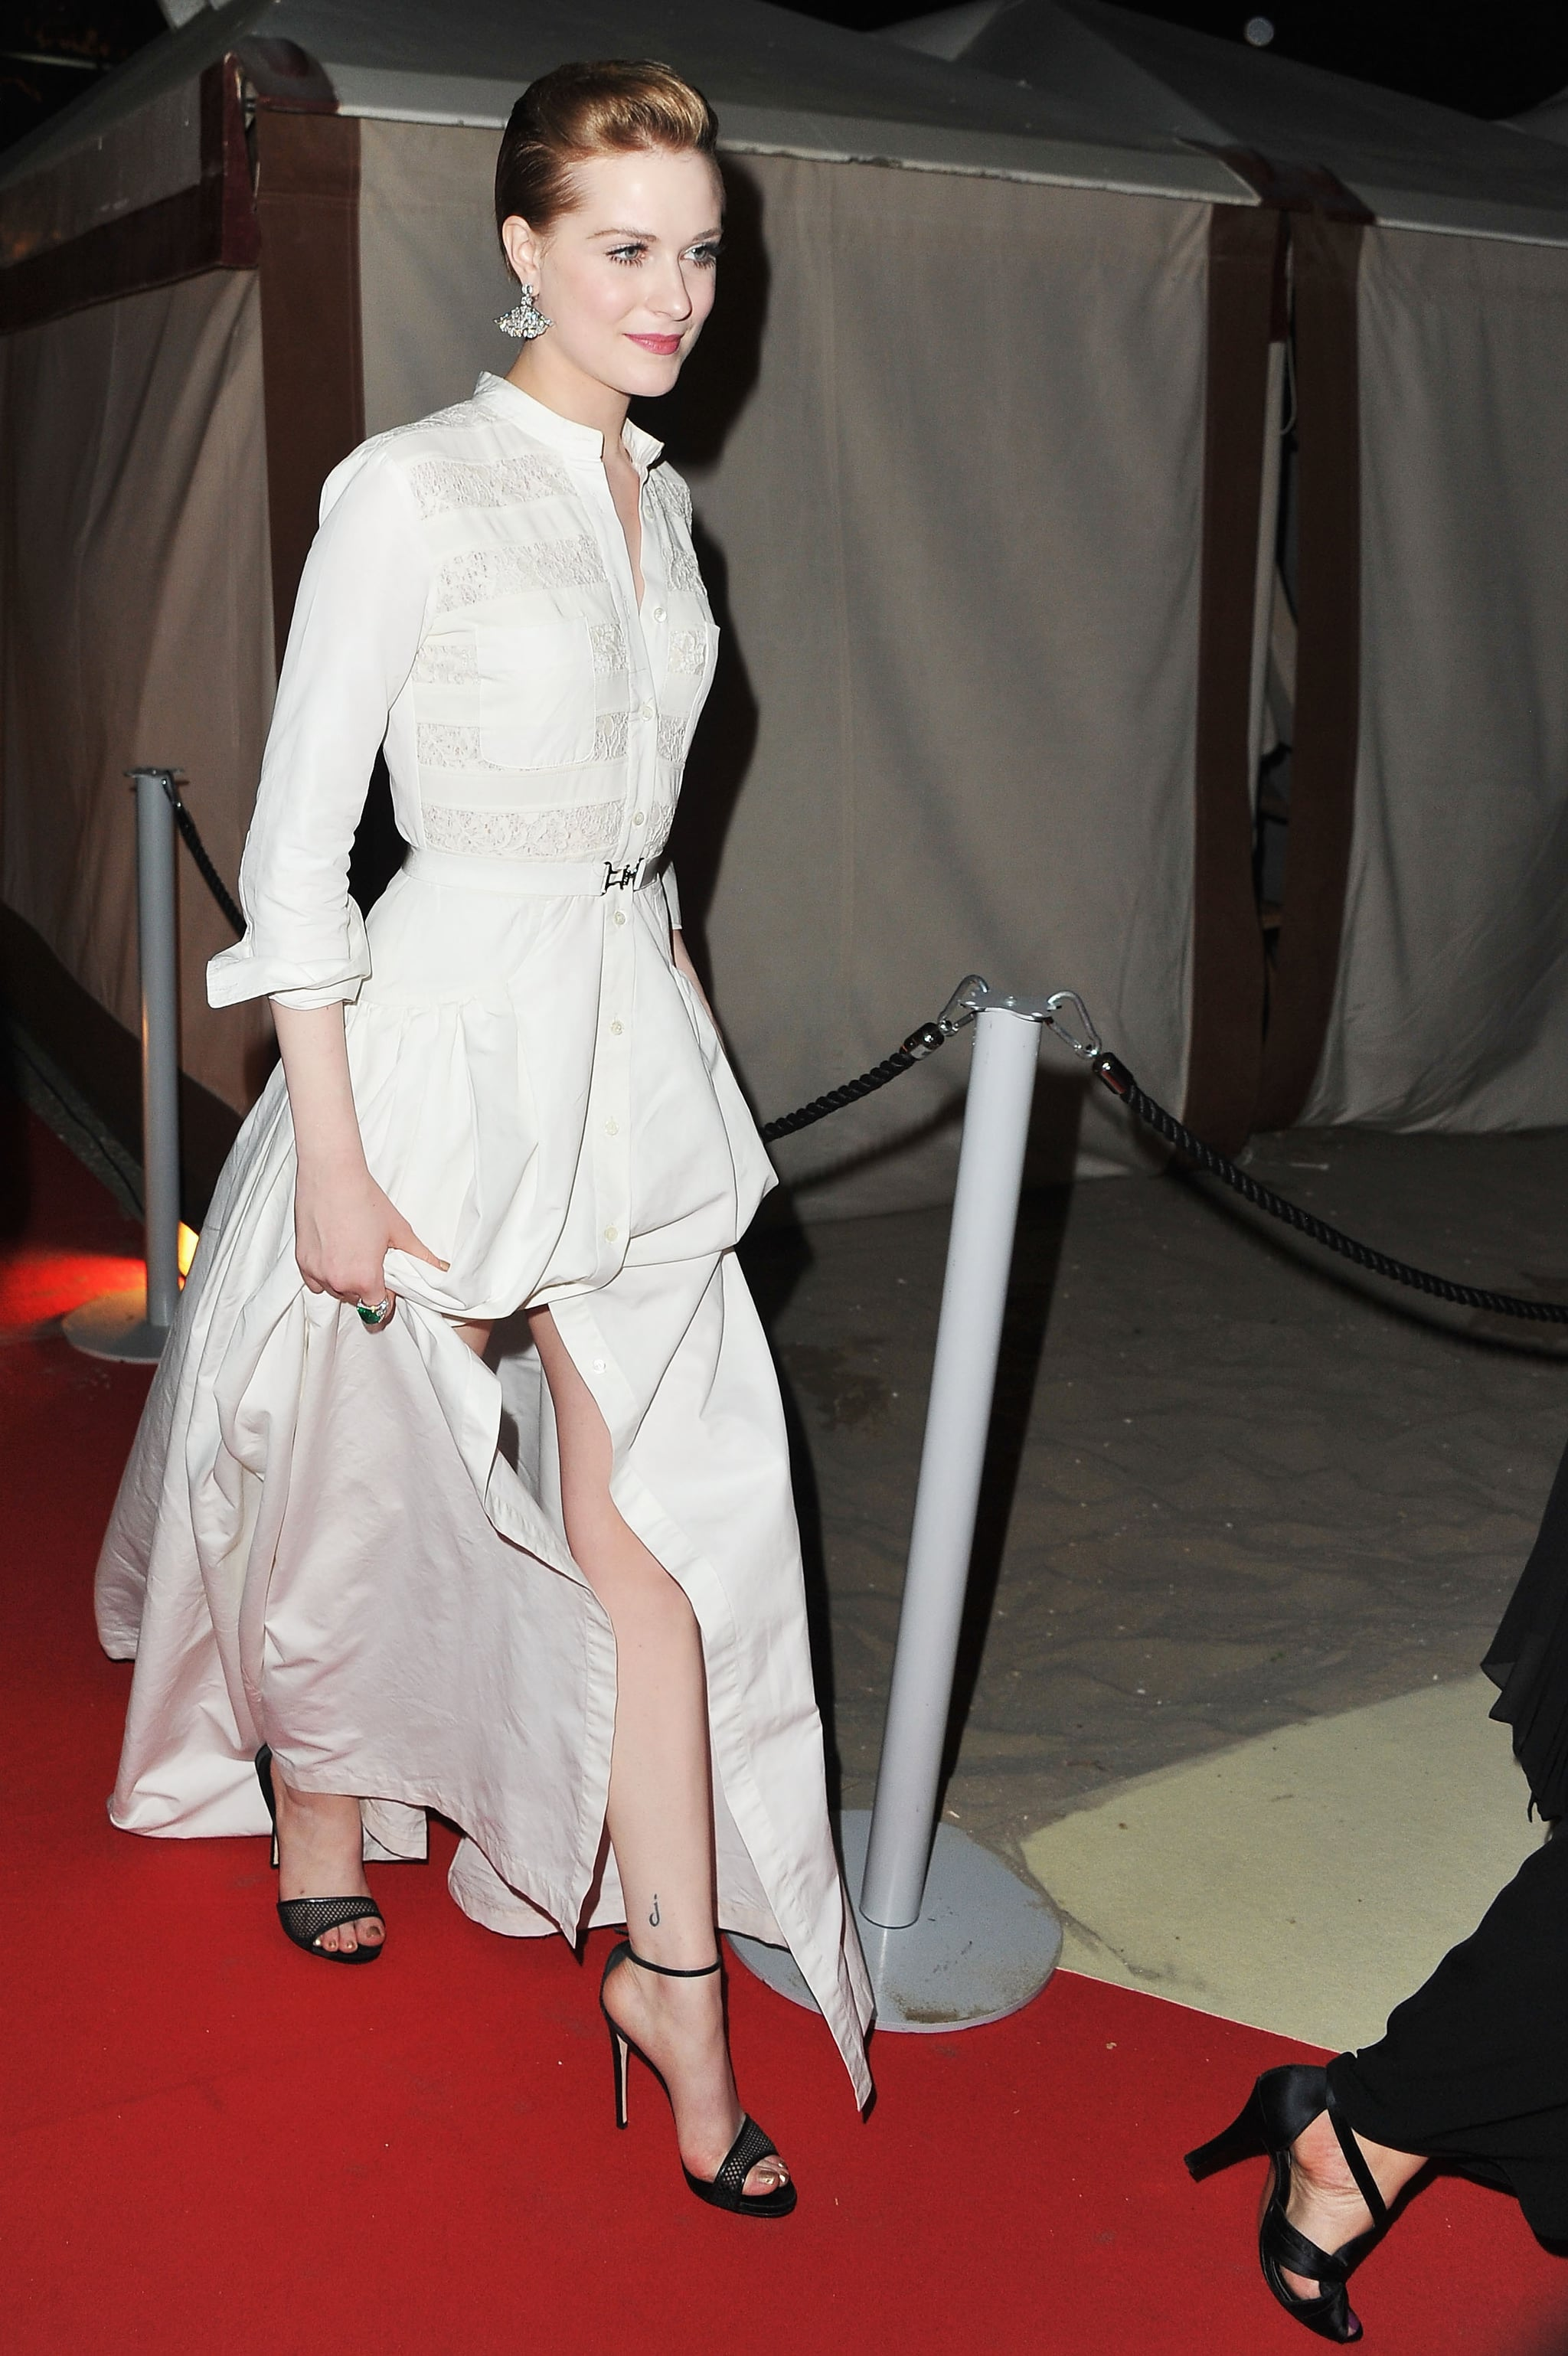 Evan Rachel Wood at the Venice Film Festival opening dinner.